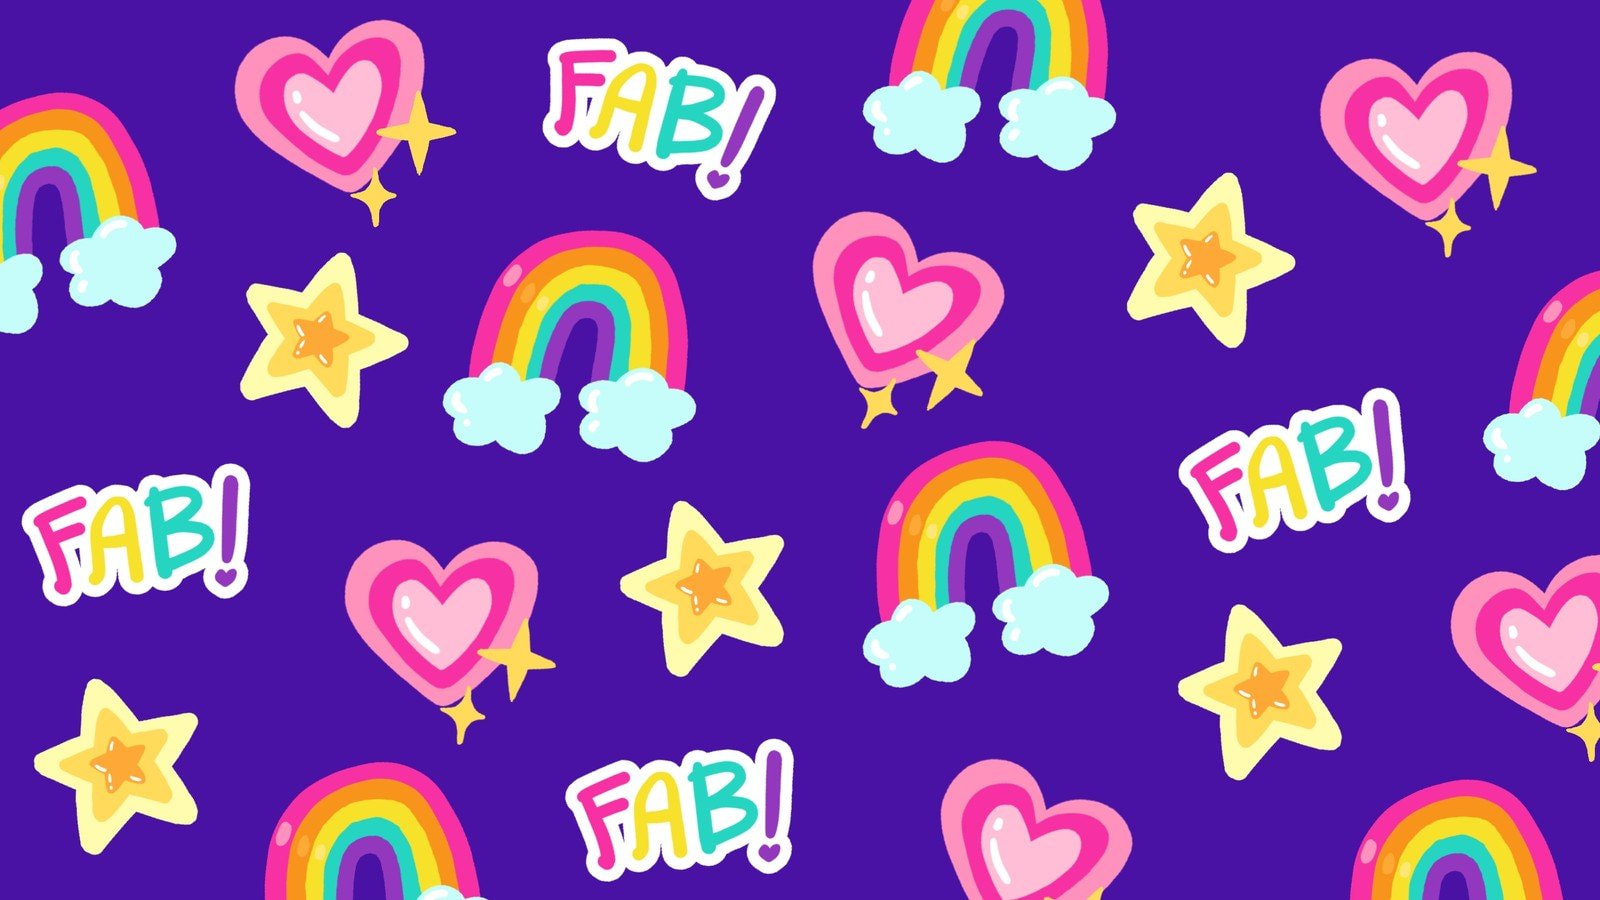 Colorful Cute and Fun Animated Zoom Virtual Background